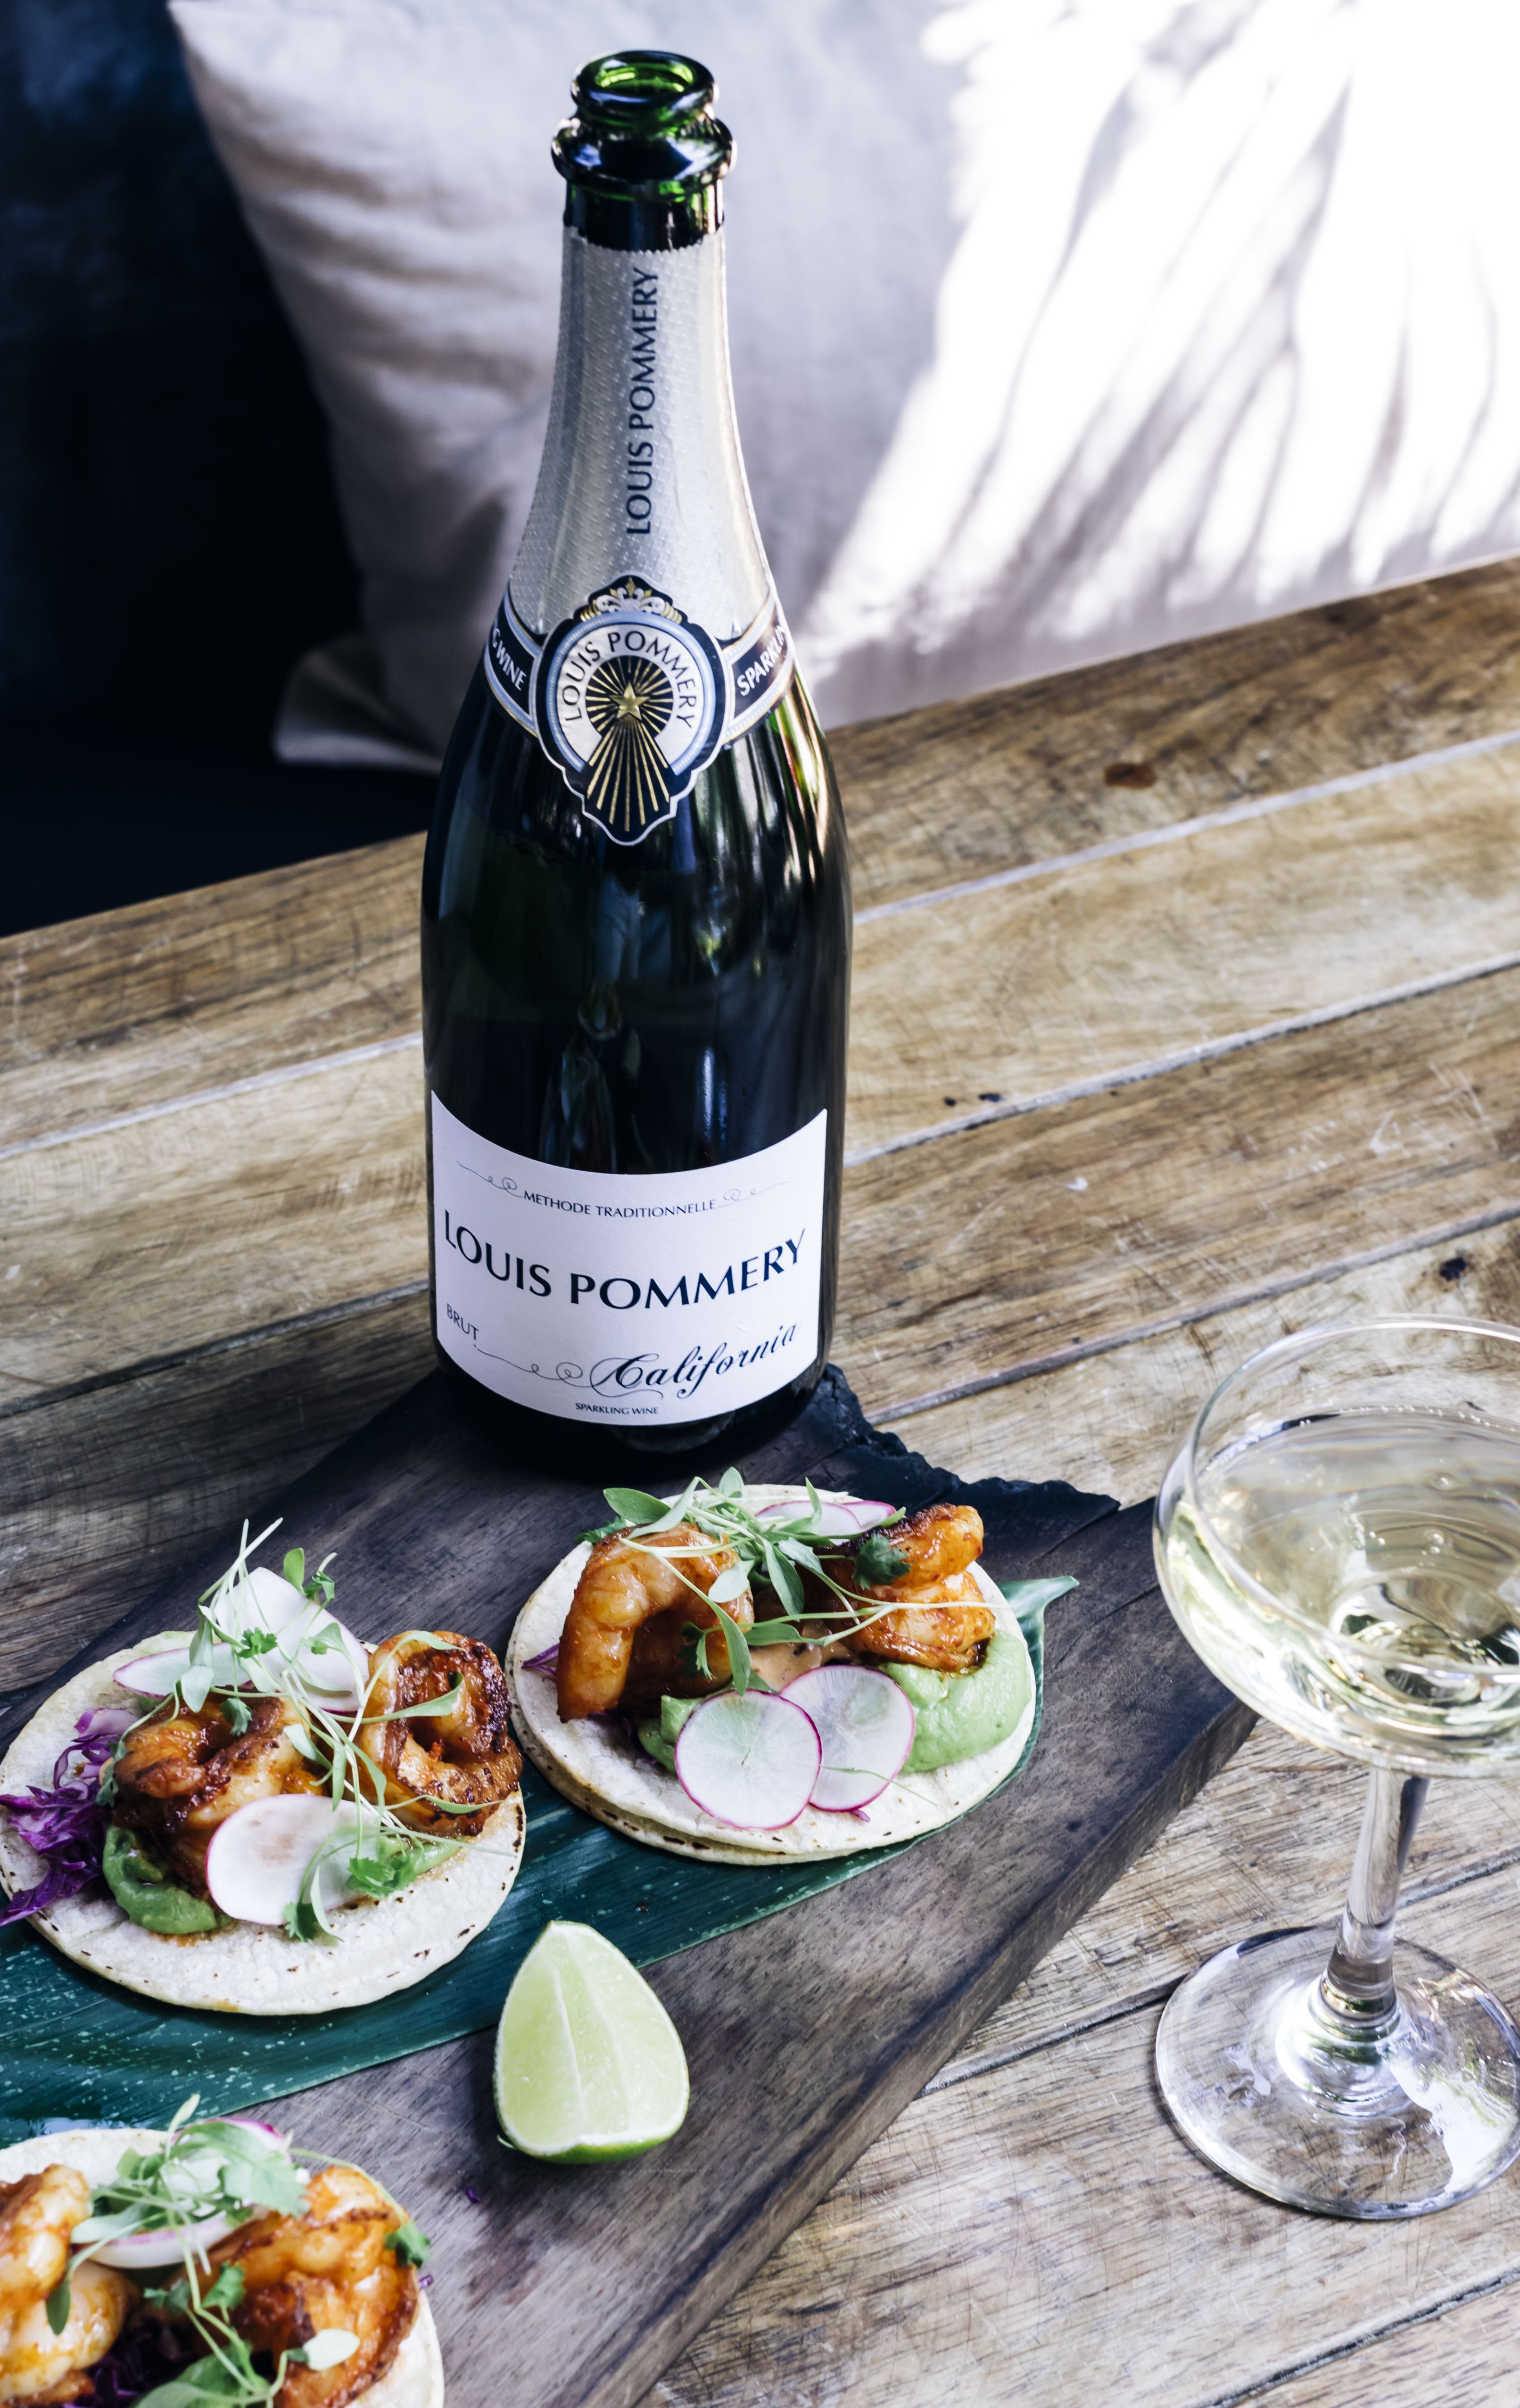 Louis Pommery Brut California Food Pairing Gift Product Image